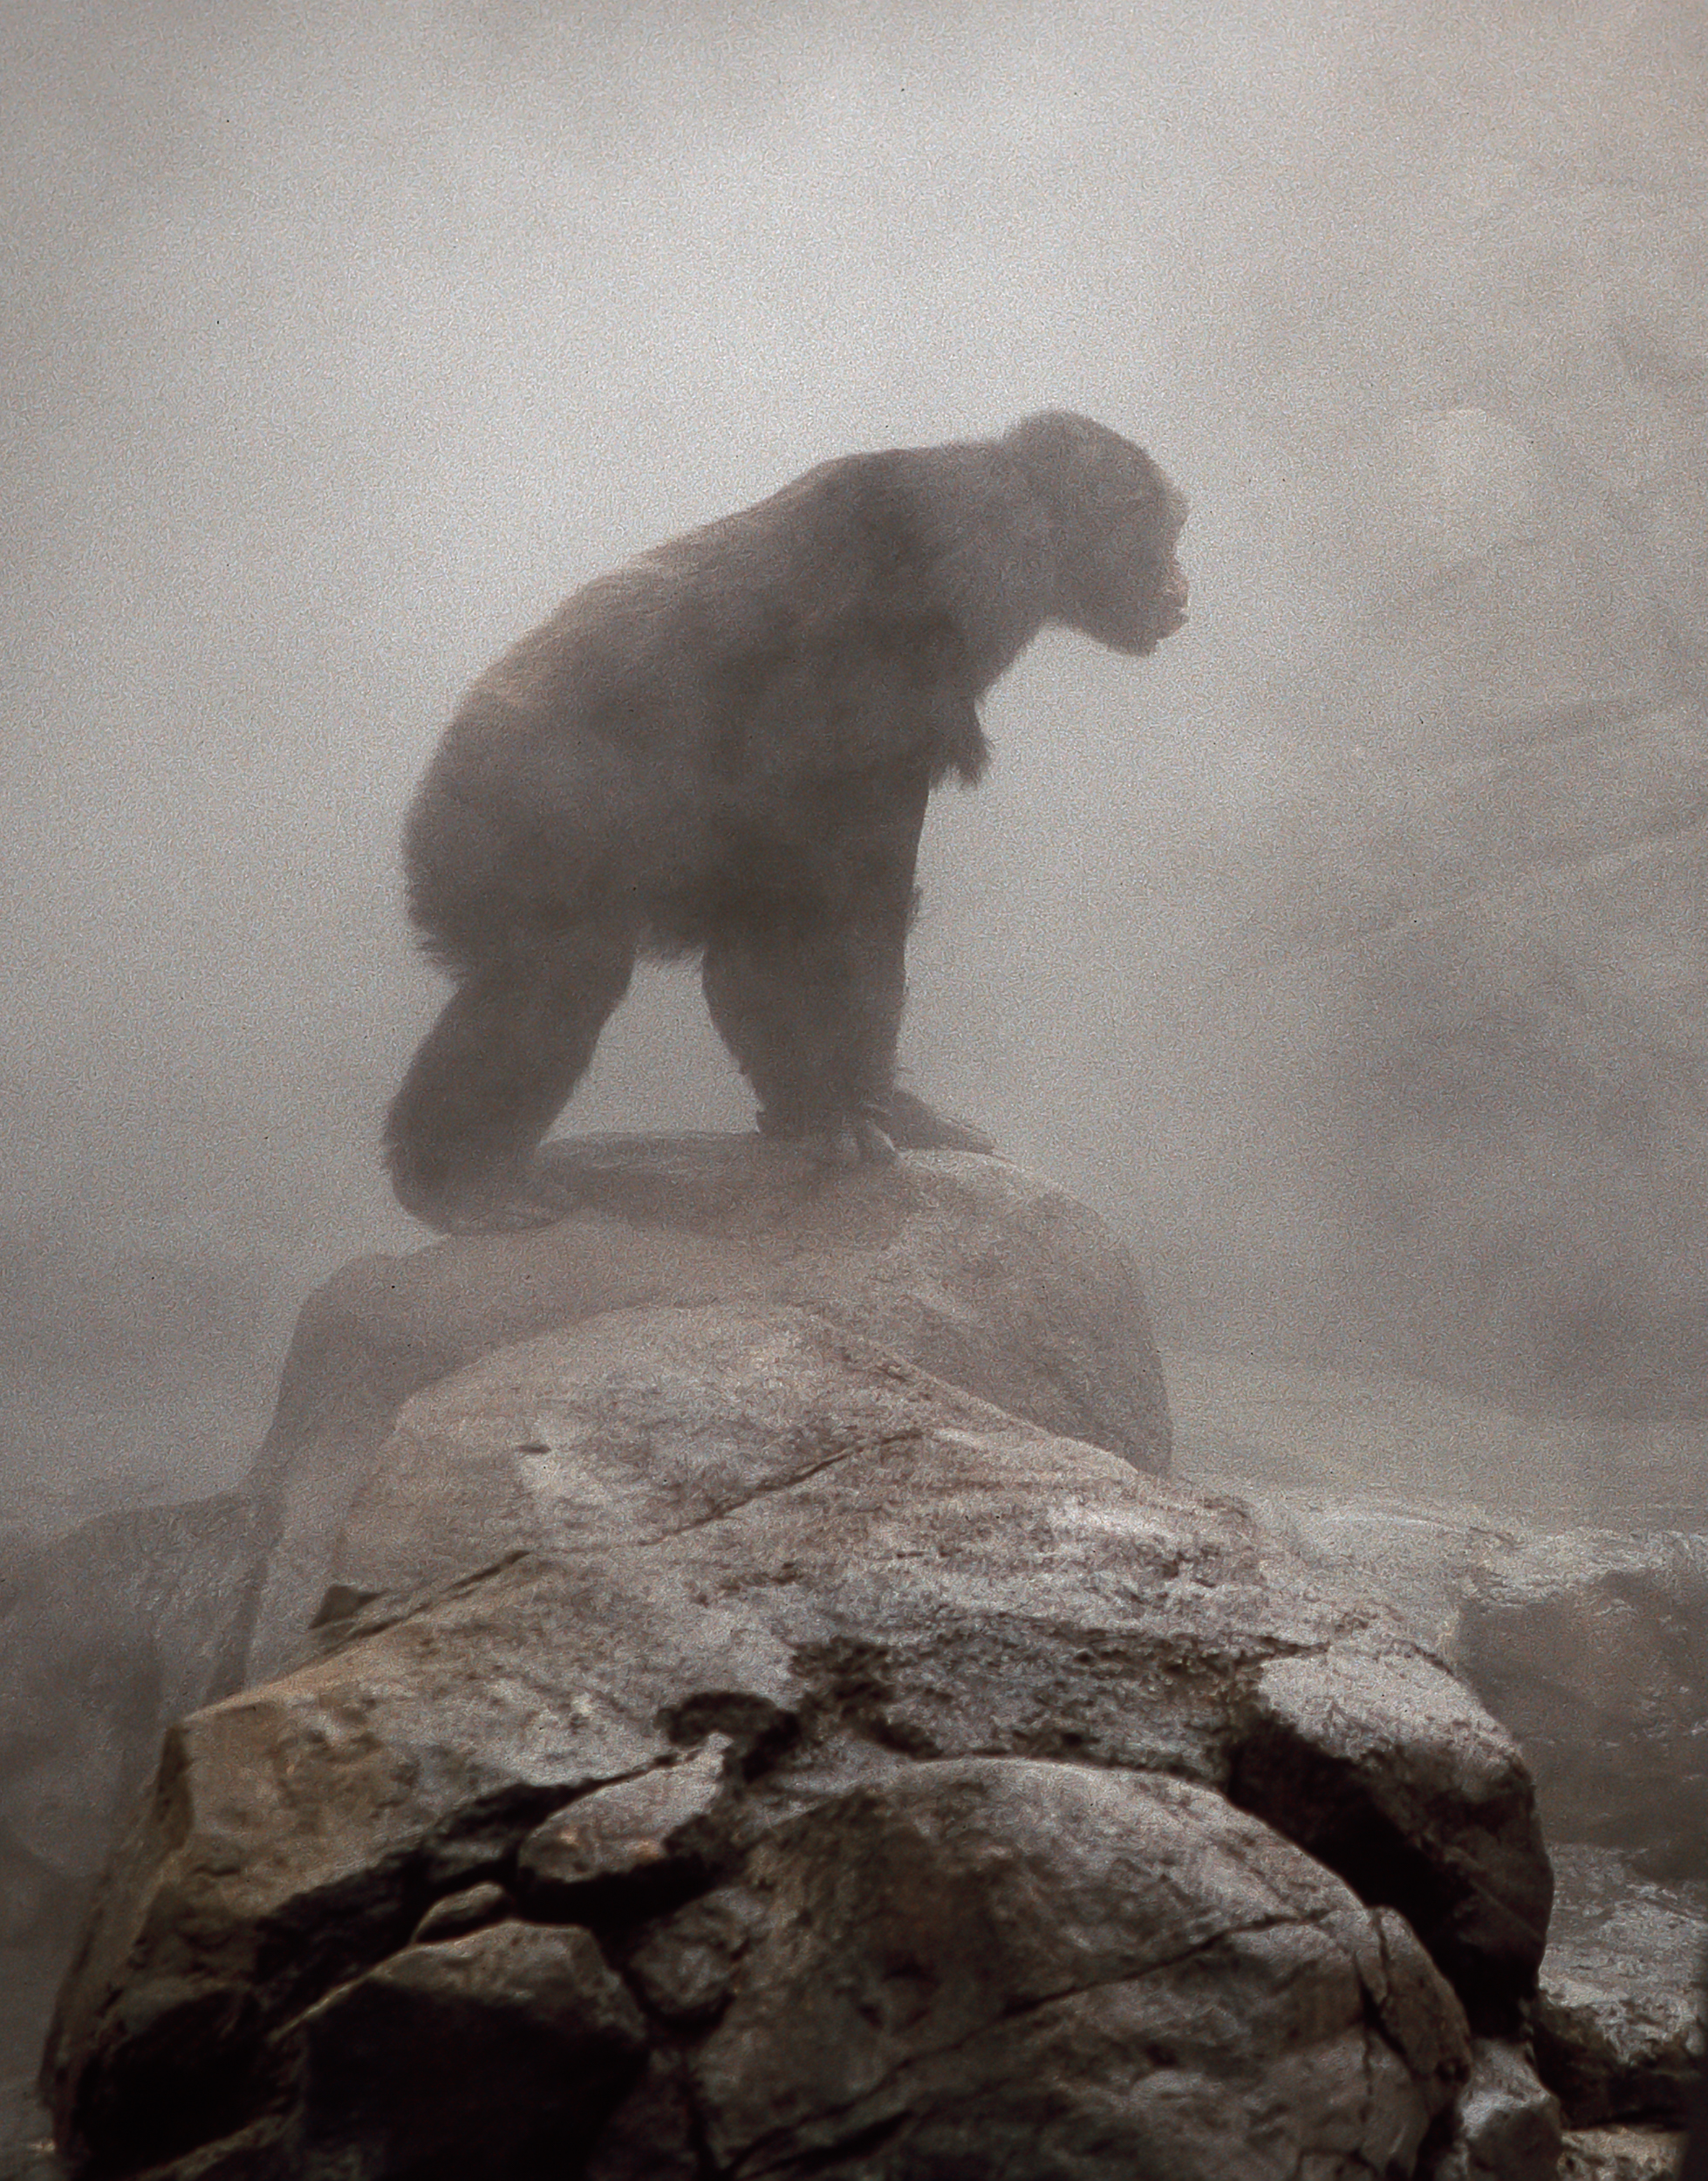 Chimp in the mist.jpg